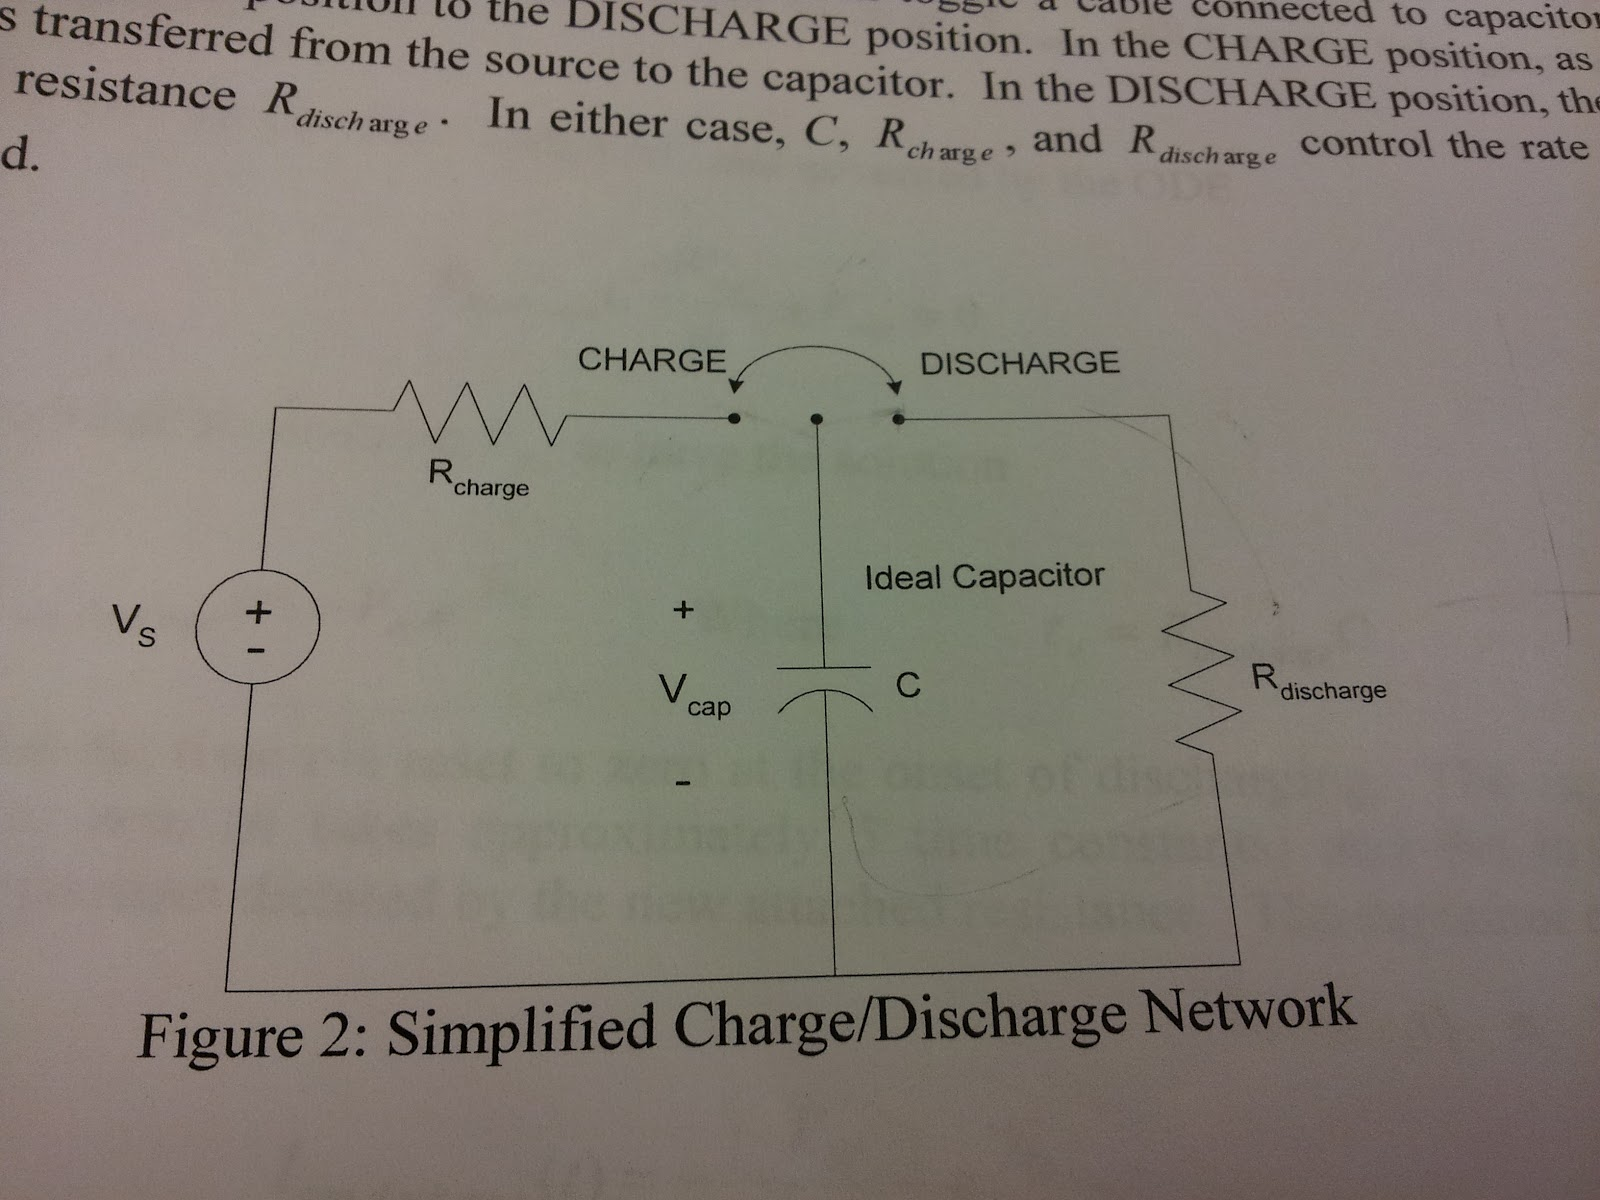 Engineering 44 Ovazquez Capacitor Charging Discharging Charge Circuit The Figure Below Is An Example Of A Simplified That We Will Be Building Has Resistance Rc And Dischargre Rd